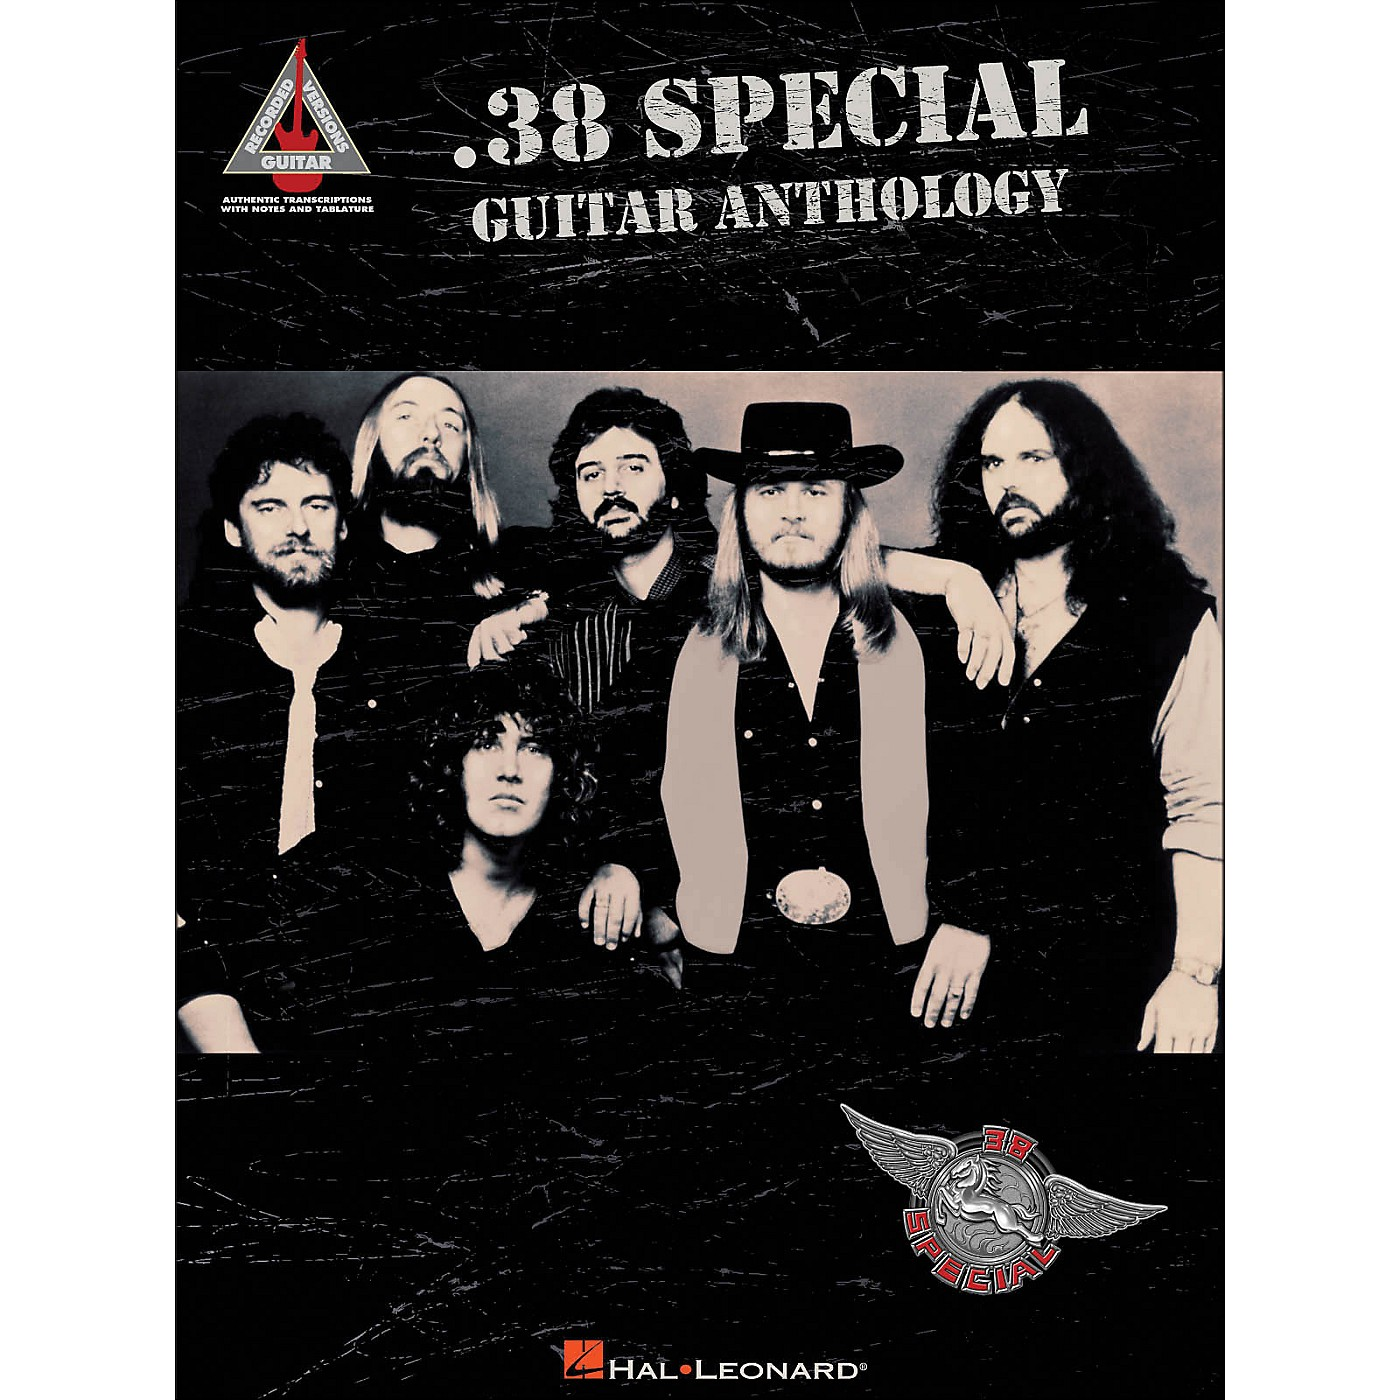 Hal Leonard .38 Special Guitar Anthology Tab Songbook thumbnail